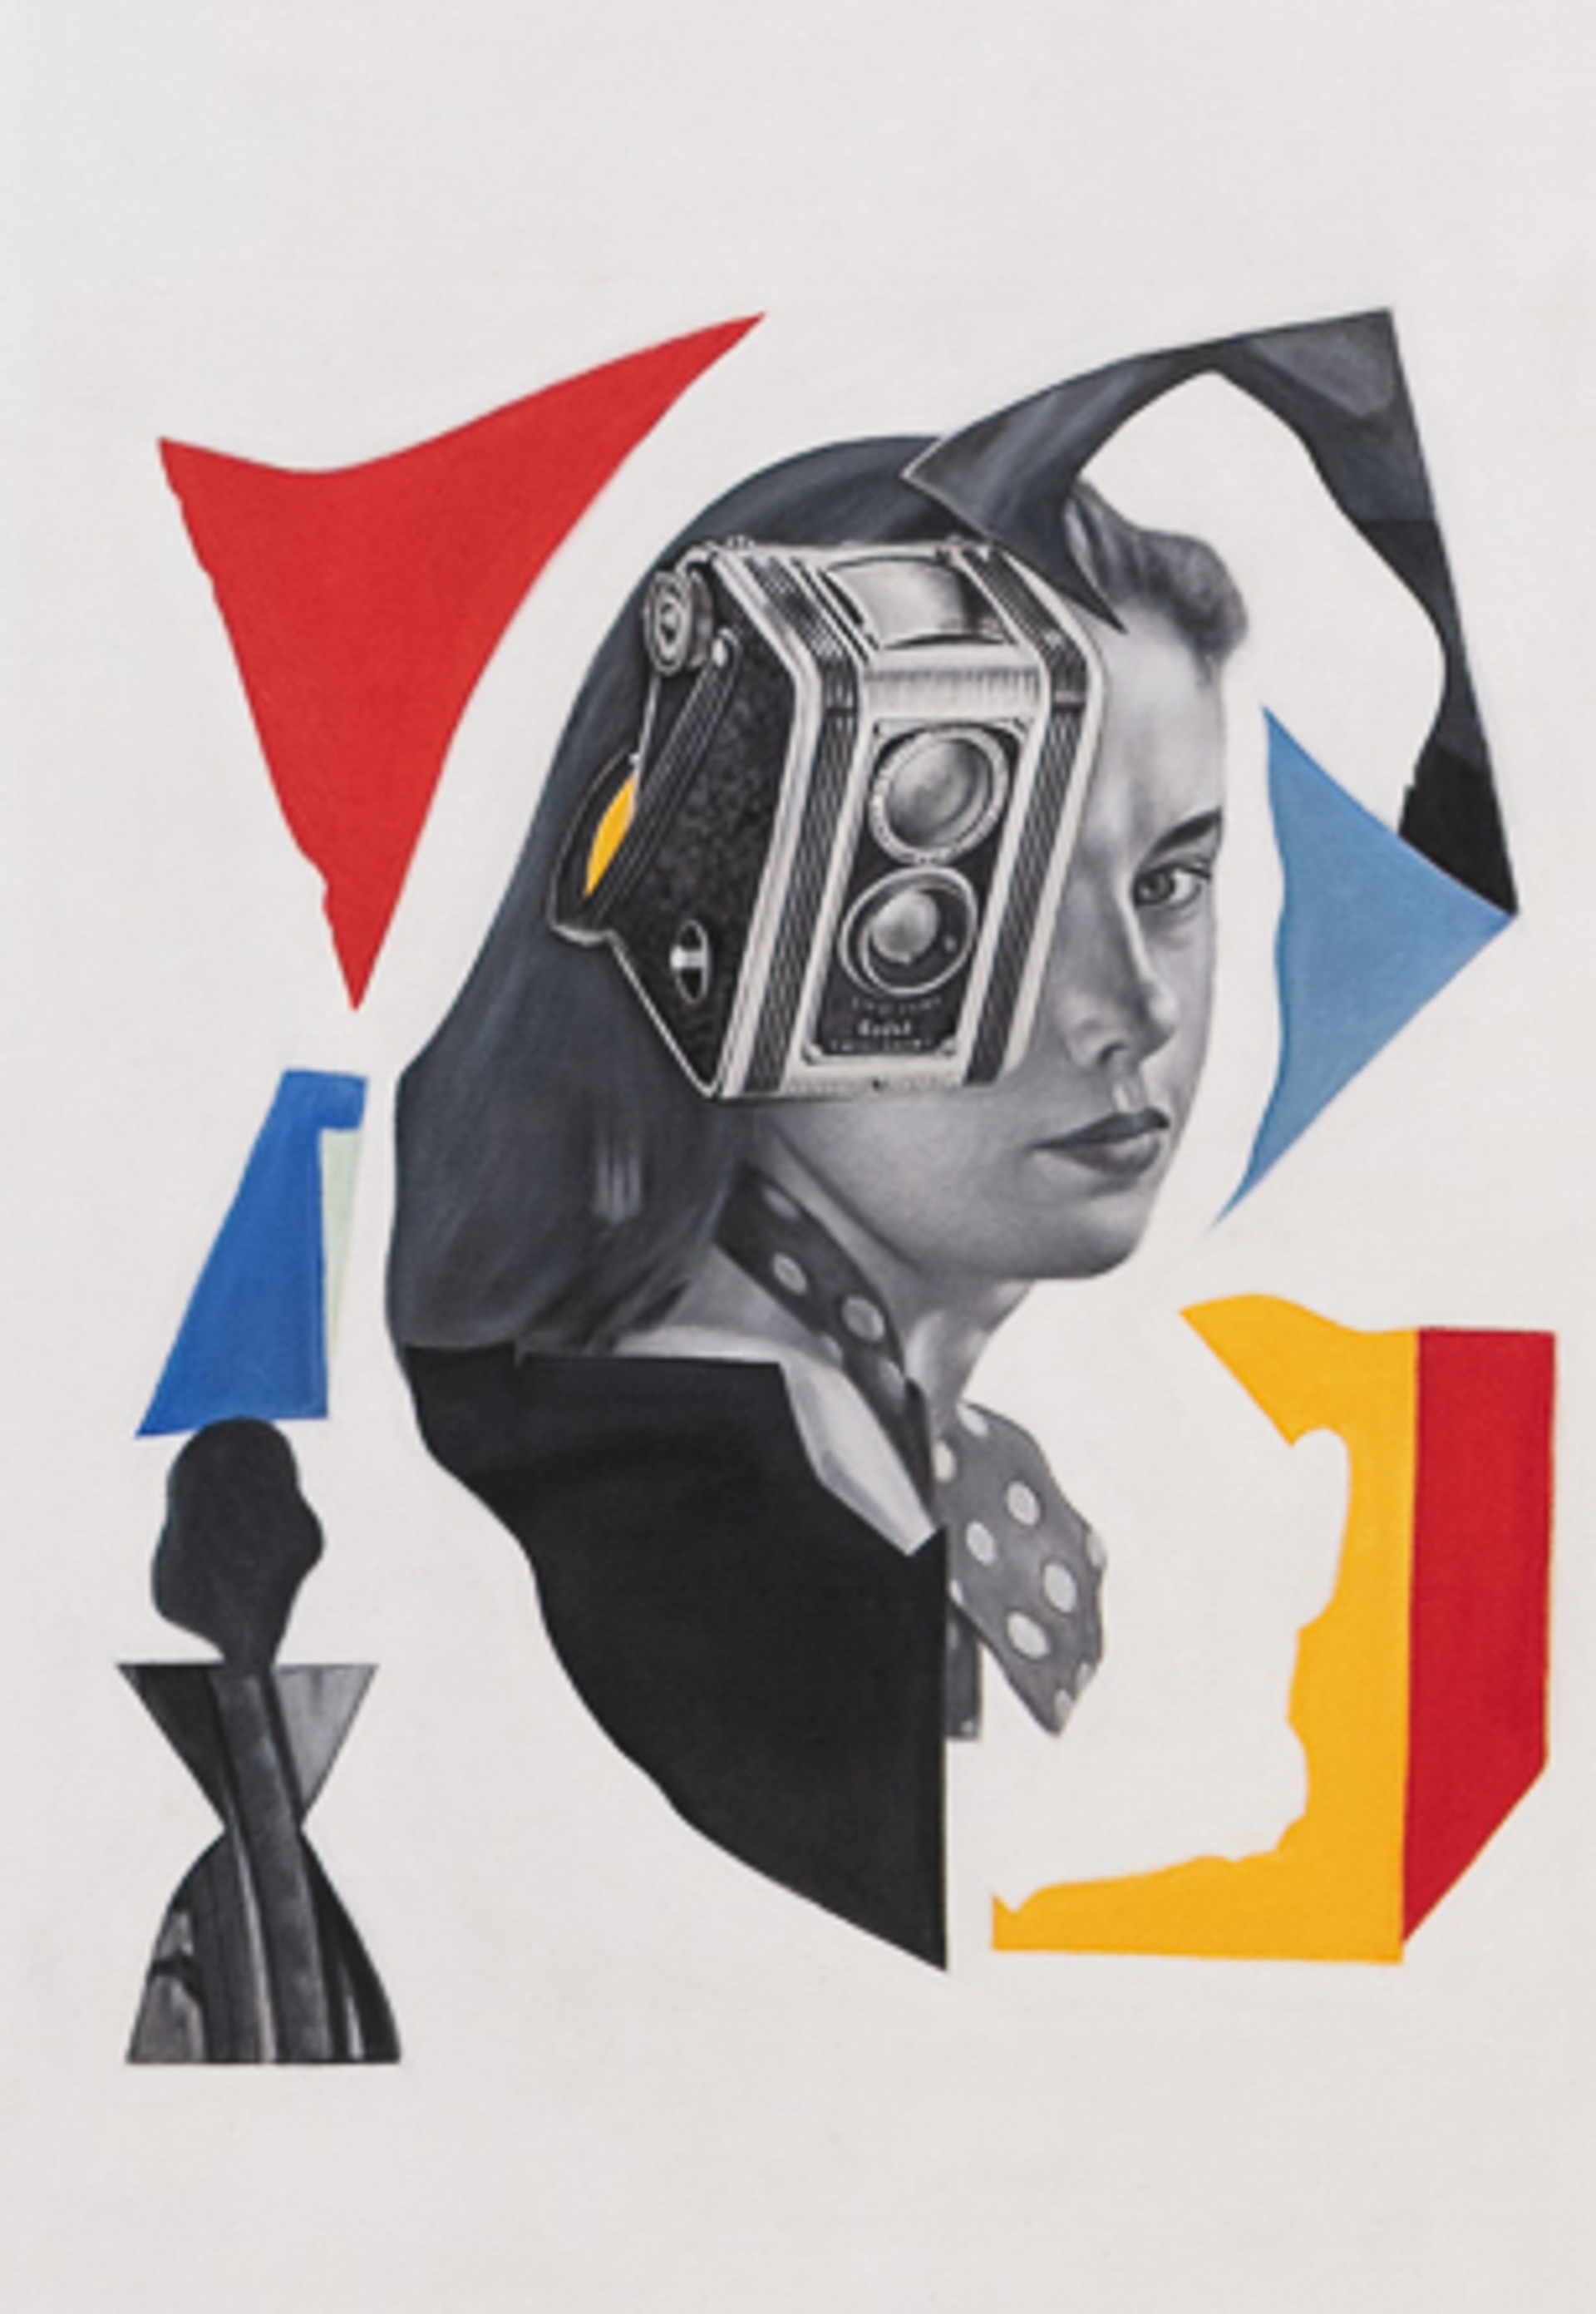 Untitled (Woman with Camera/Dafen 1, EU) by Mario Zoots